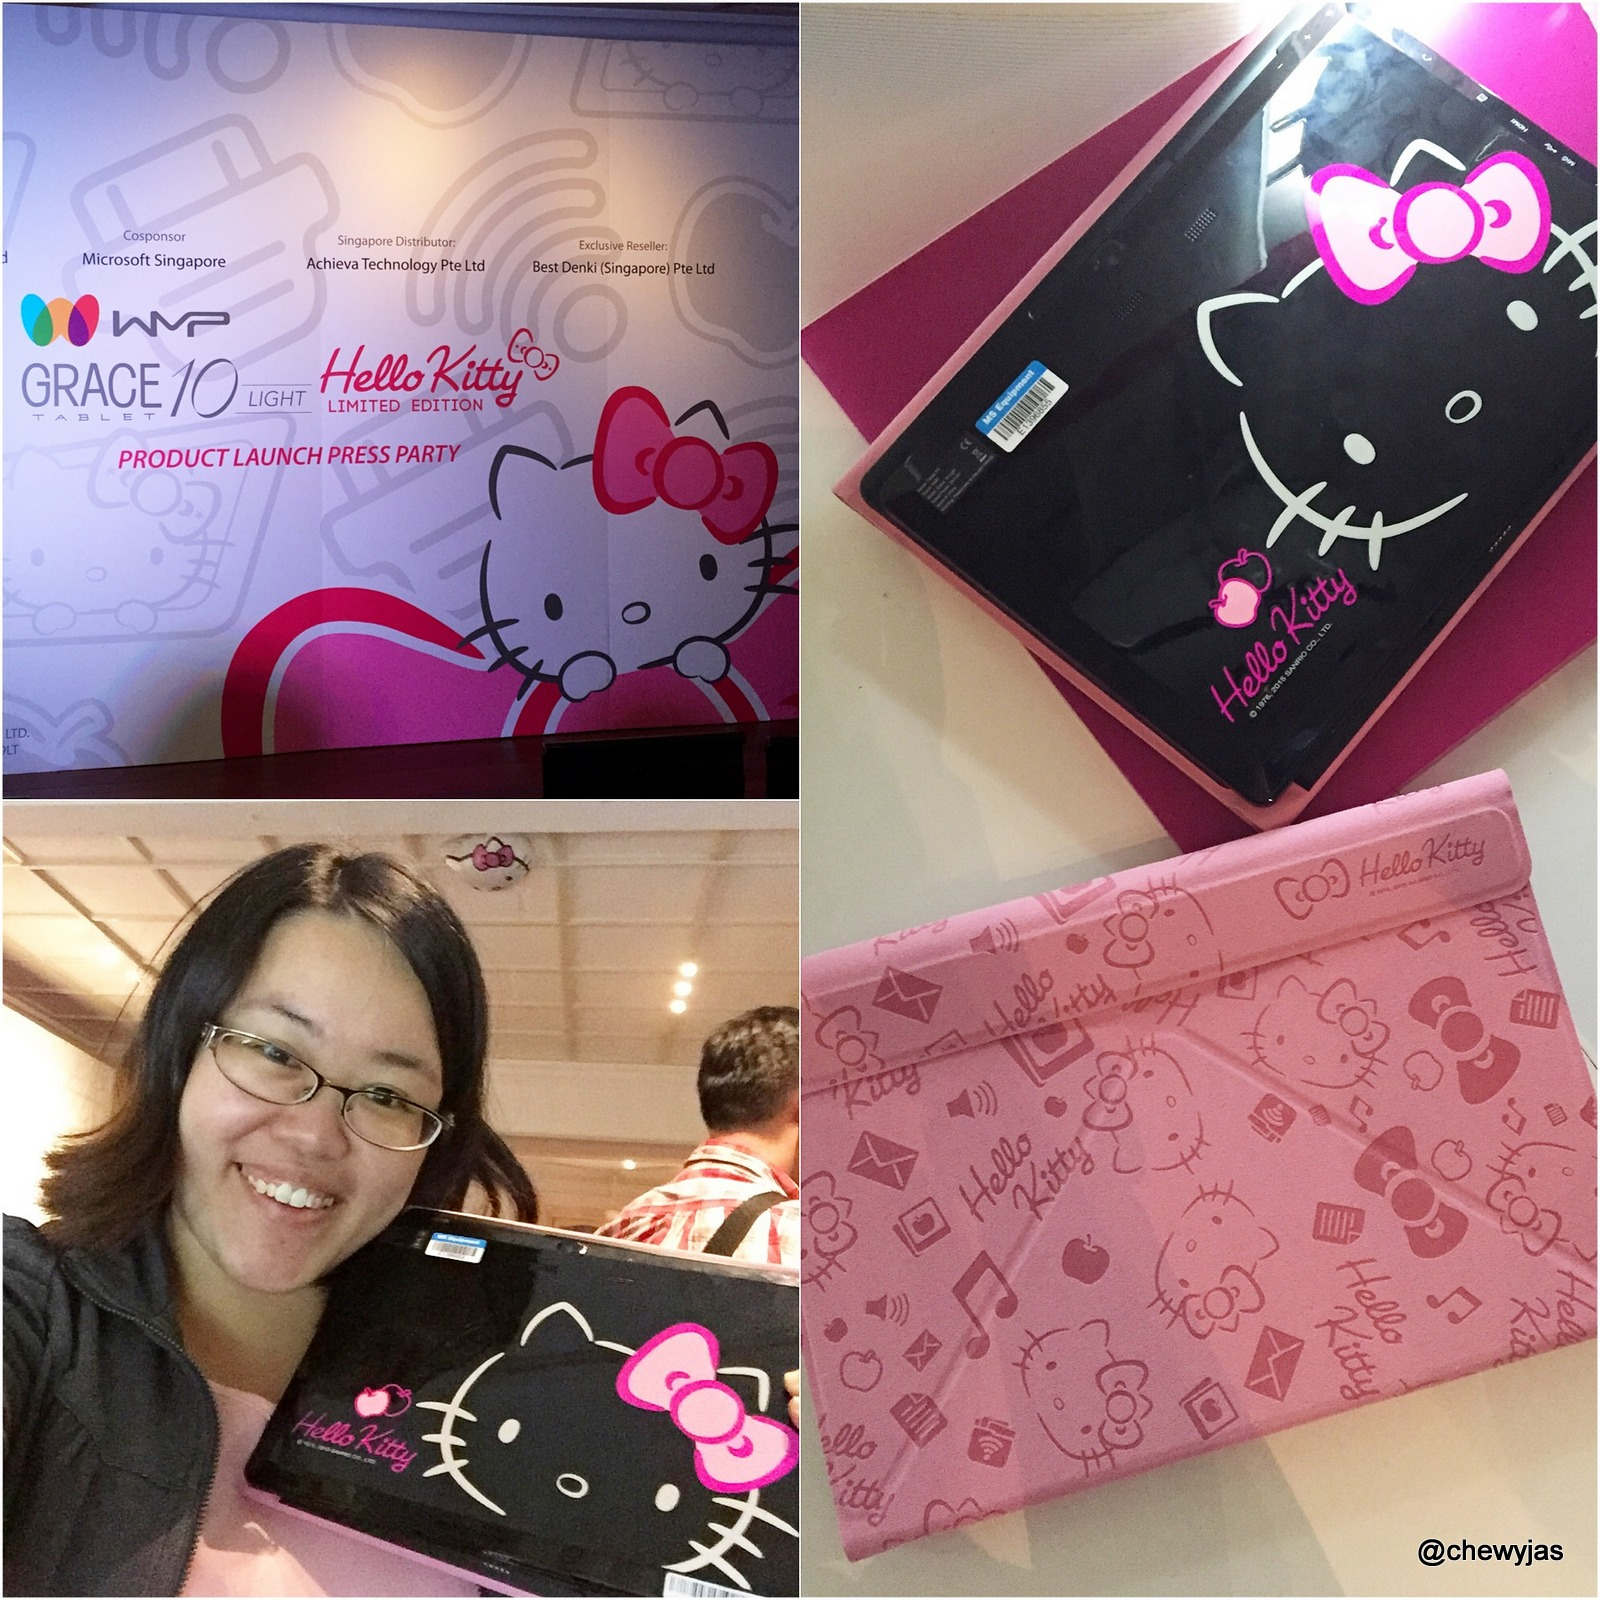 b63ffcecd [LAUNCH PARTY] Grace 10 Light Hello Kitty Limited Edition Windows 10 tablet